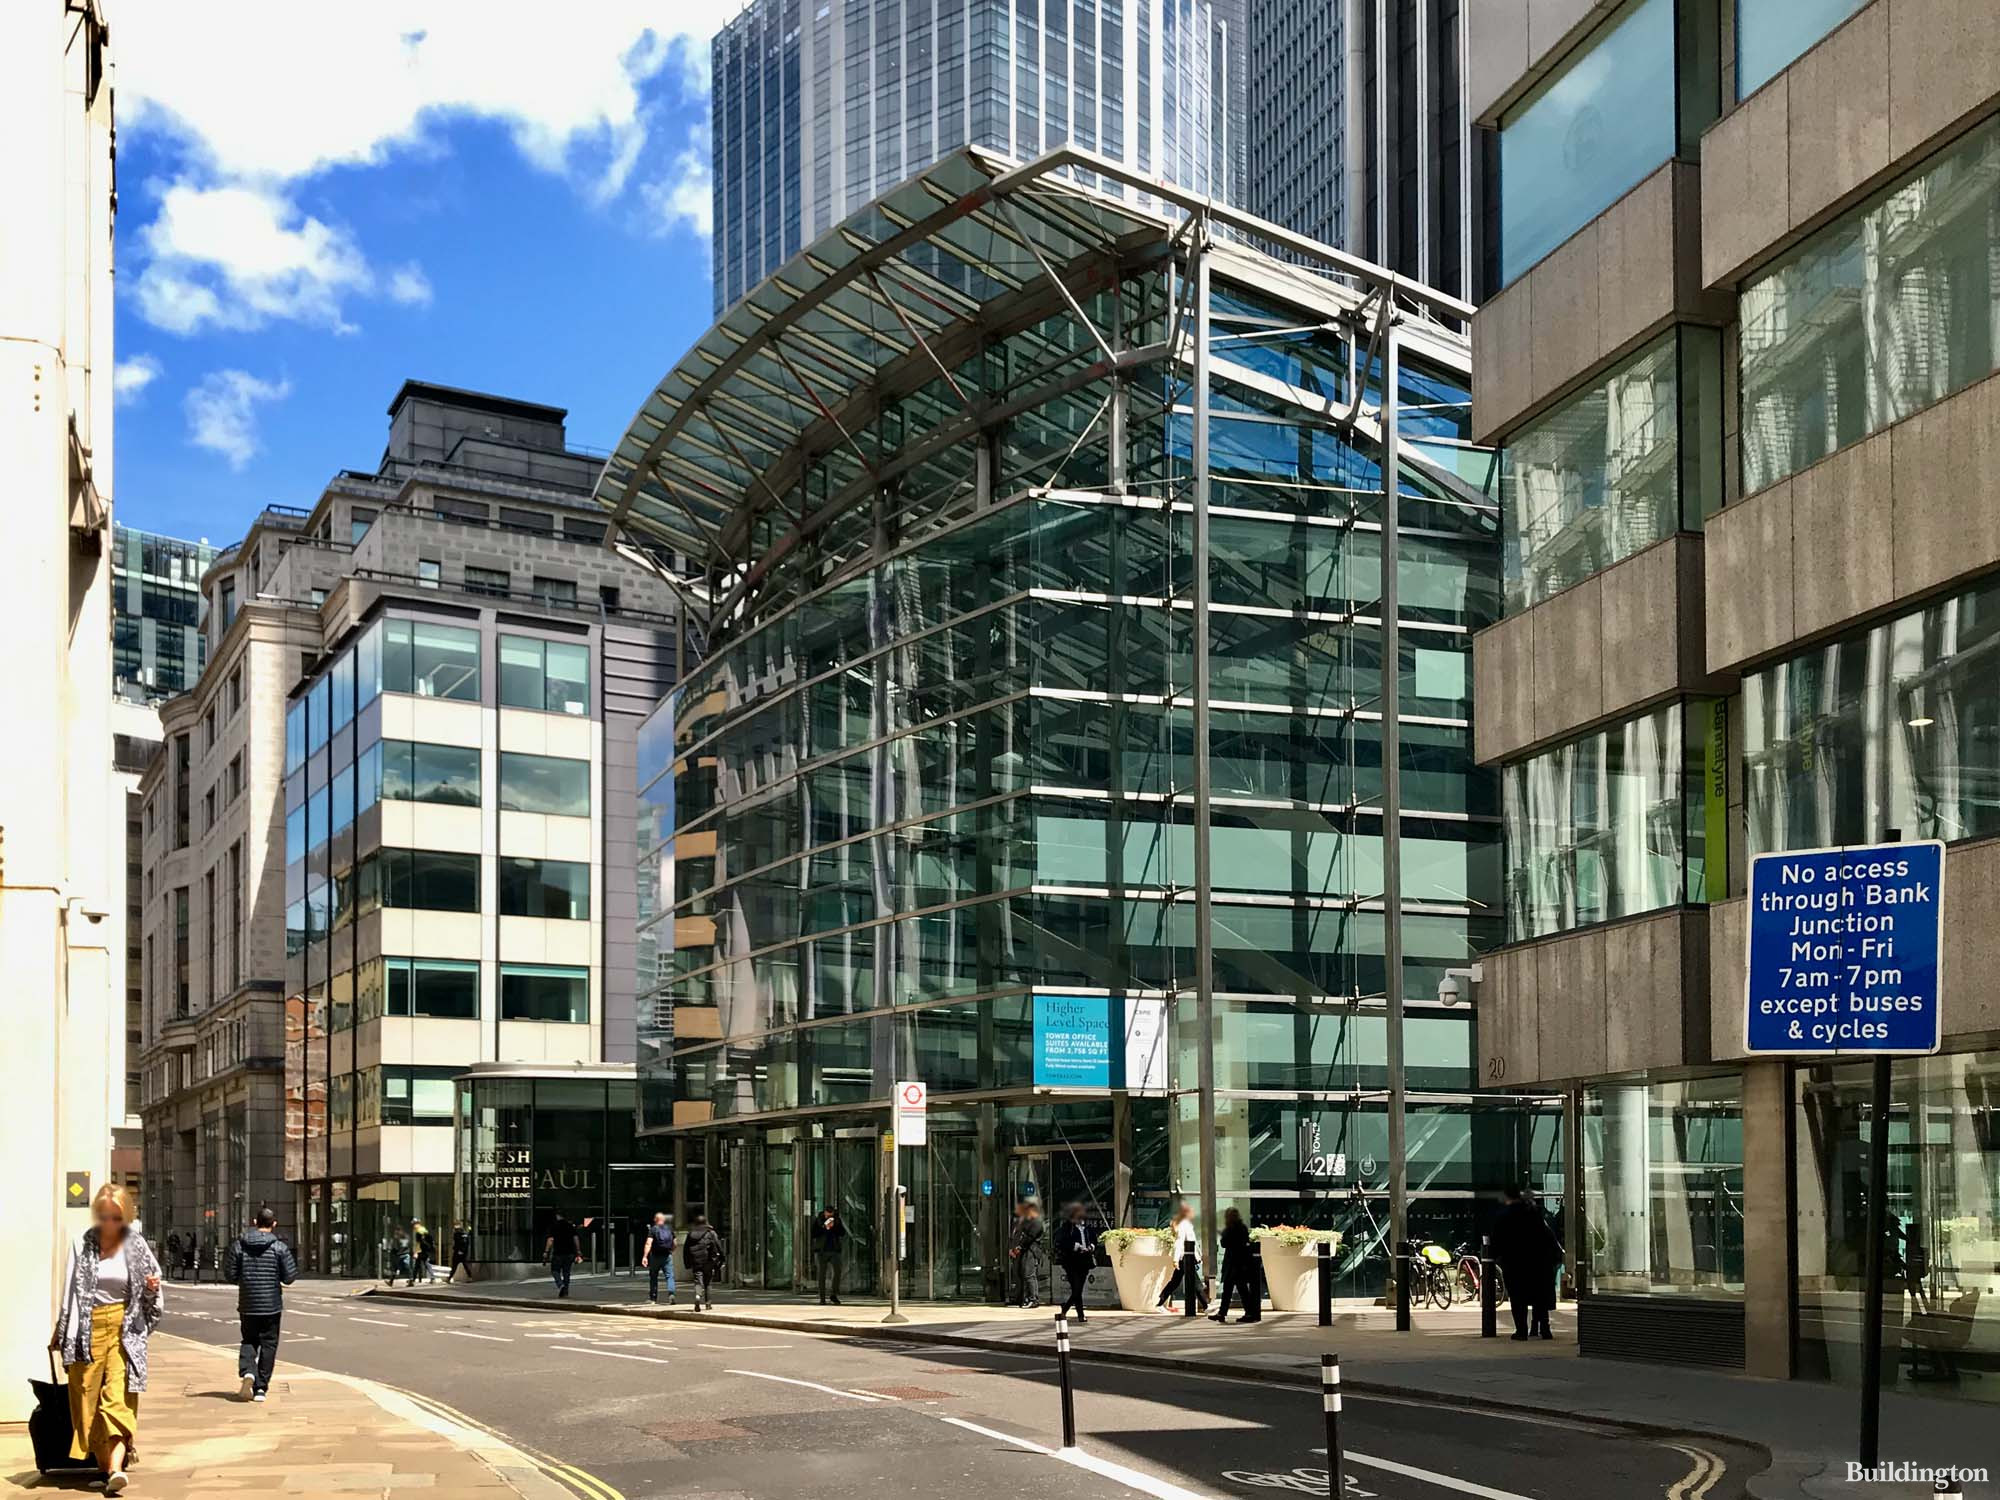 Entrance to Tower 42 on Old Broad Street in the City of London EC2.